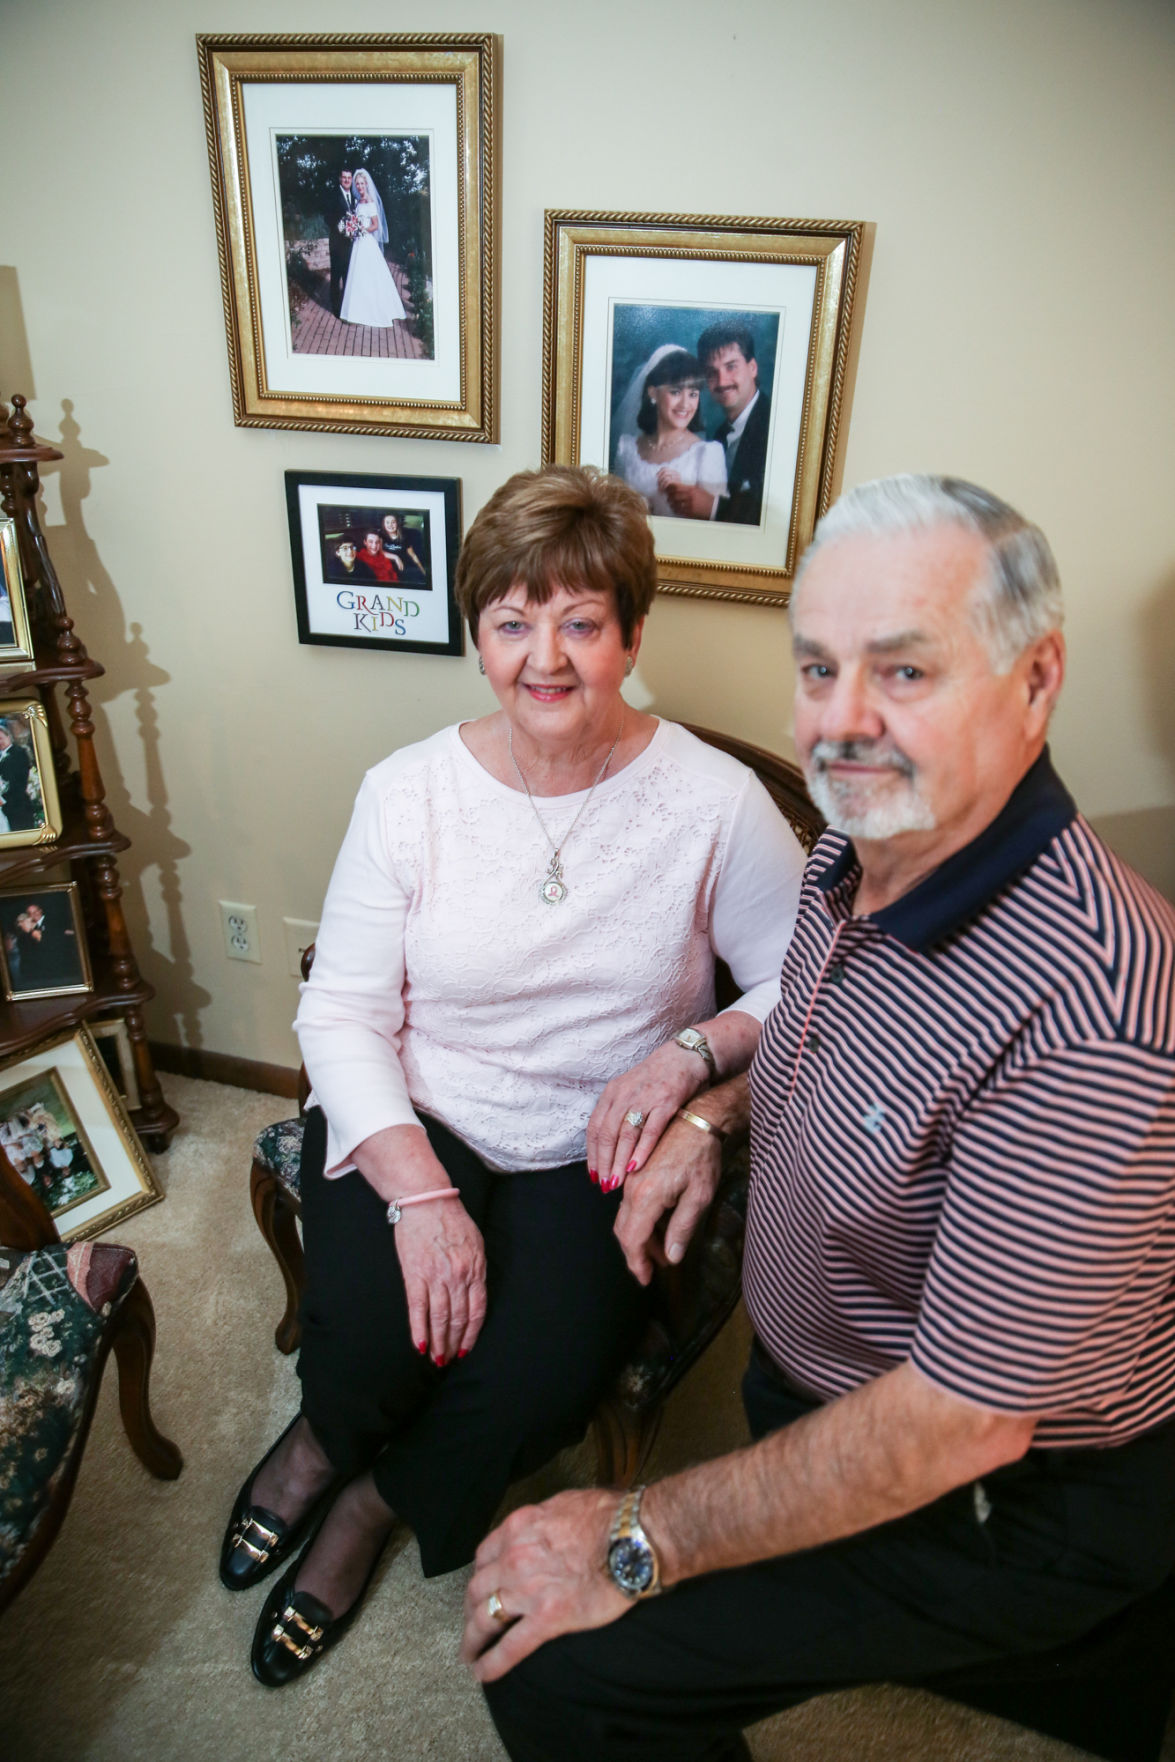 Donna Szabo, 71, survived breast cancer in 1984